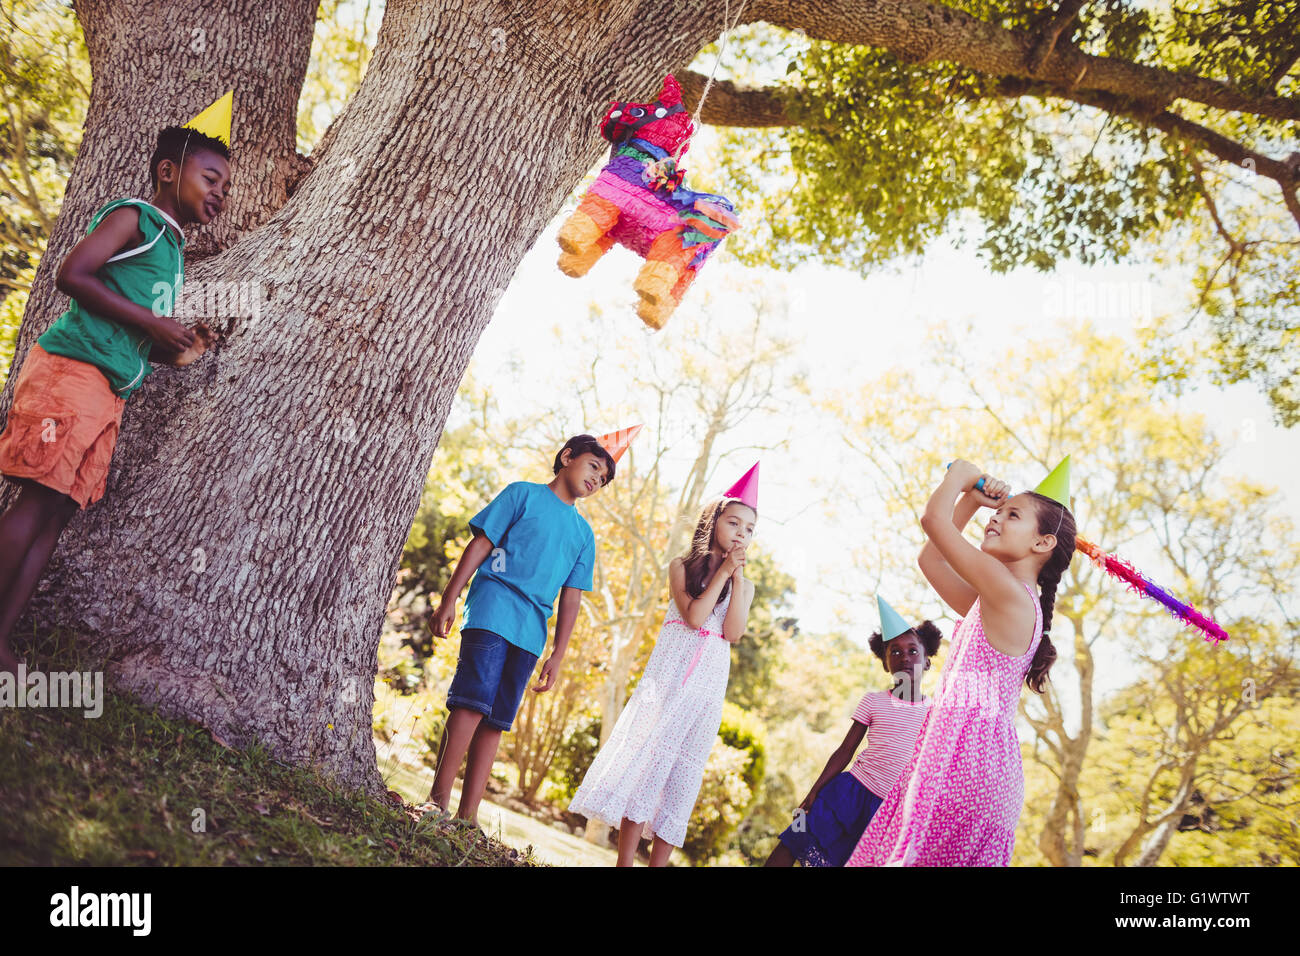 Little girl is going to broke the pinata for her birthday - Stock Image